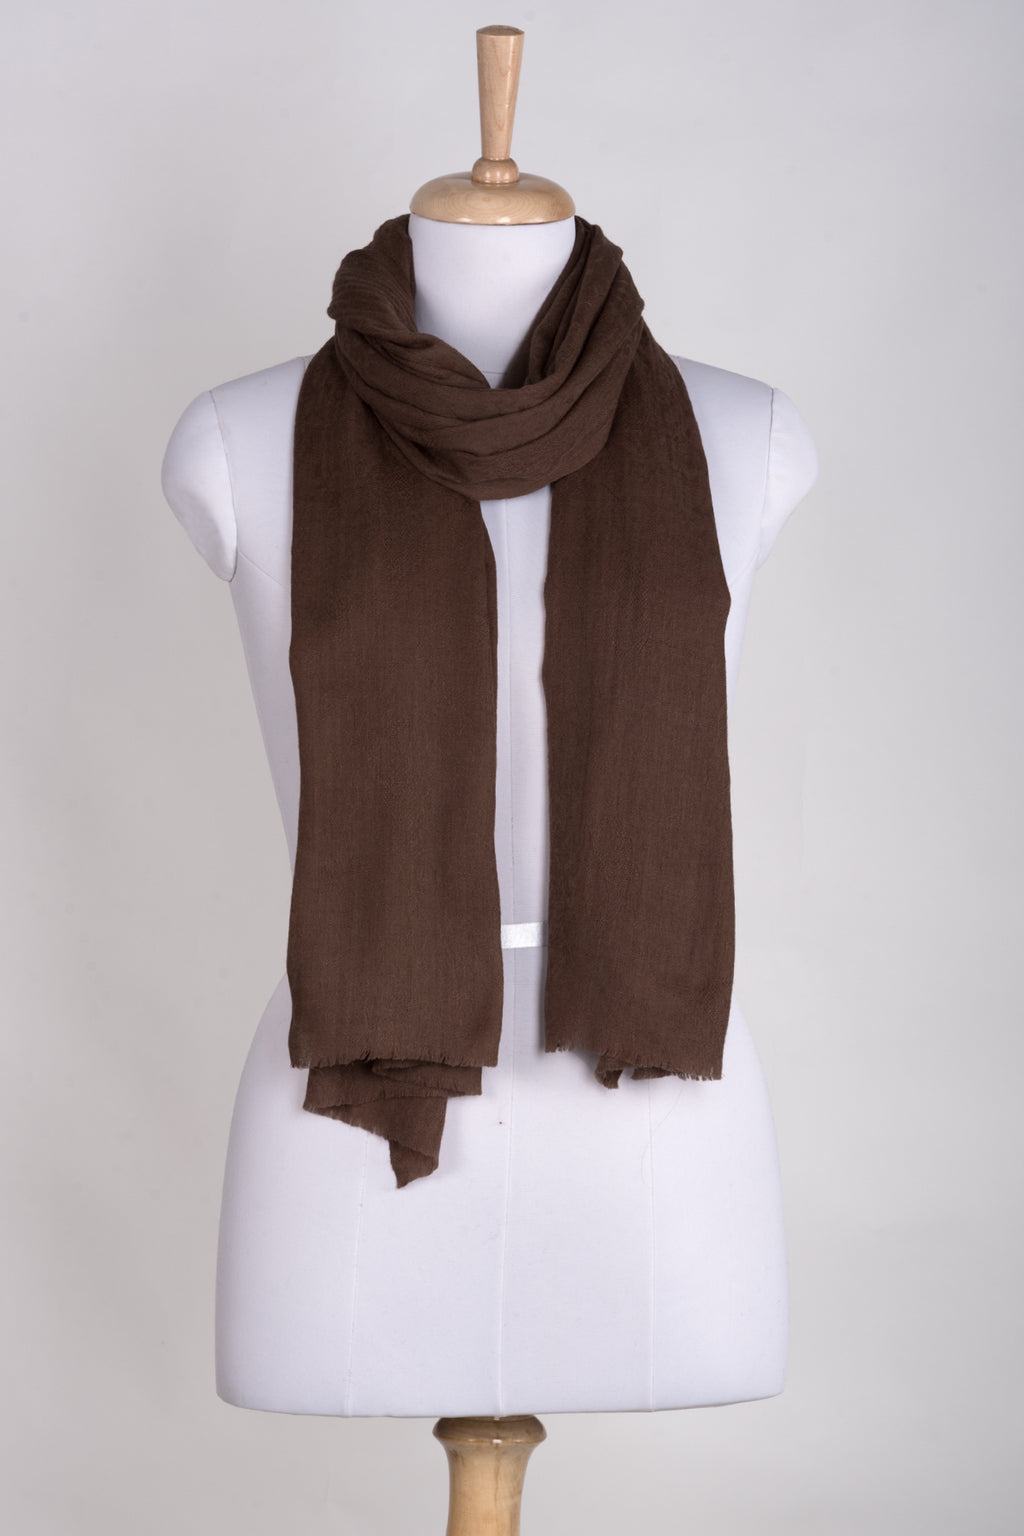 Paisley Jacquard Weave Cashmere Wool Scarf - Brown